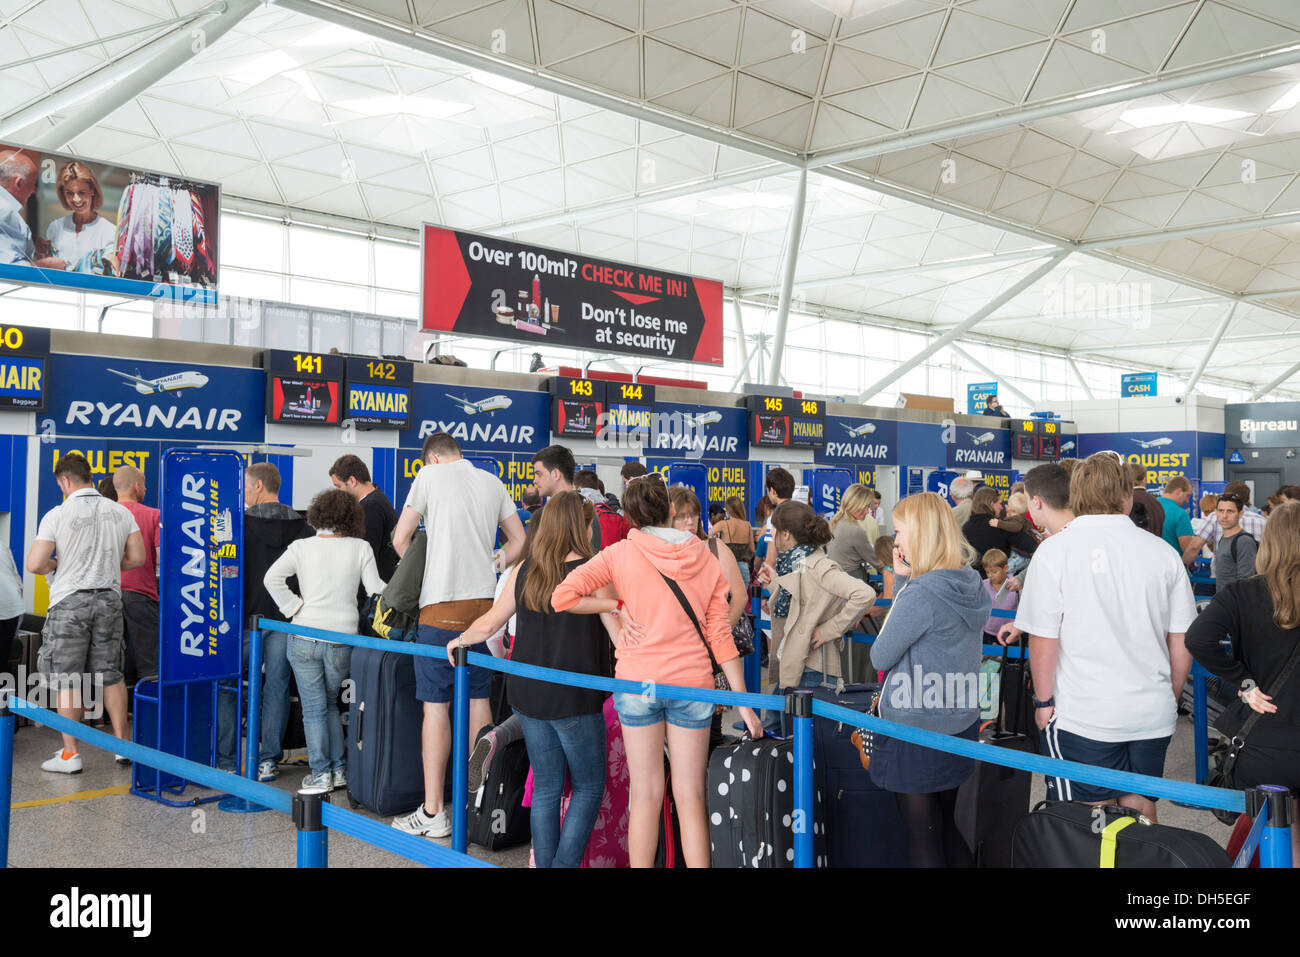 People queuing at the Ryanair check in and bag drop at Stansted Airport, England, UK - Stock Image